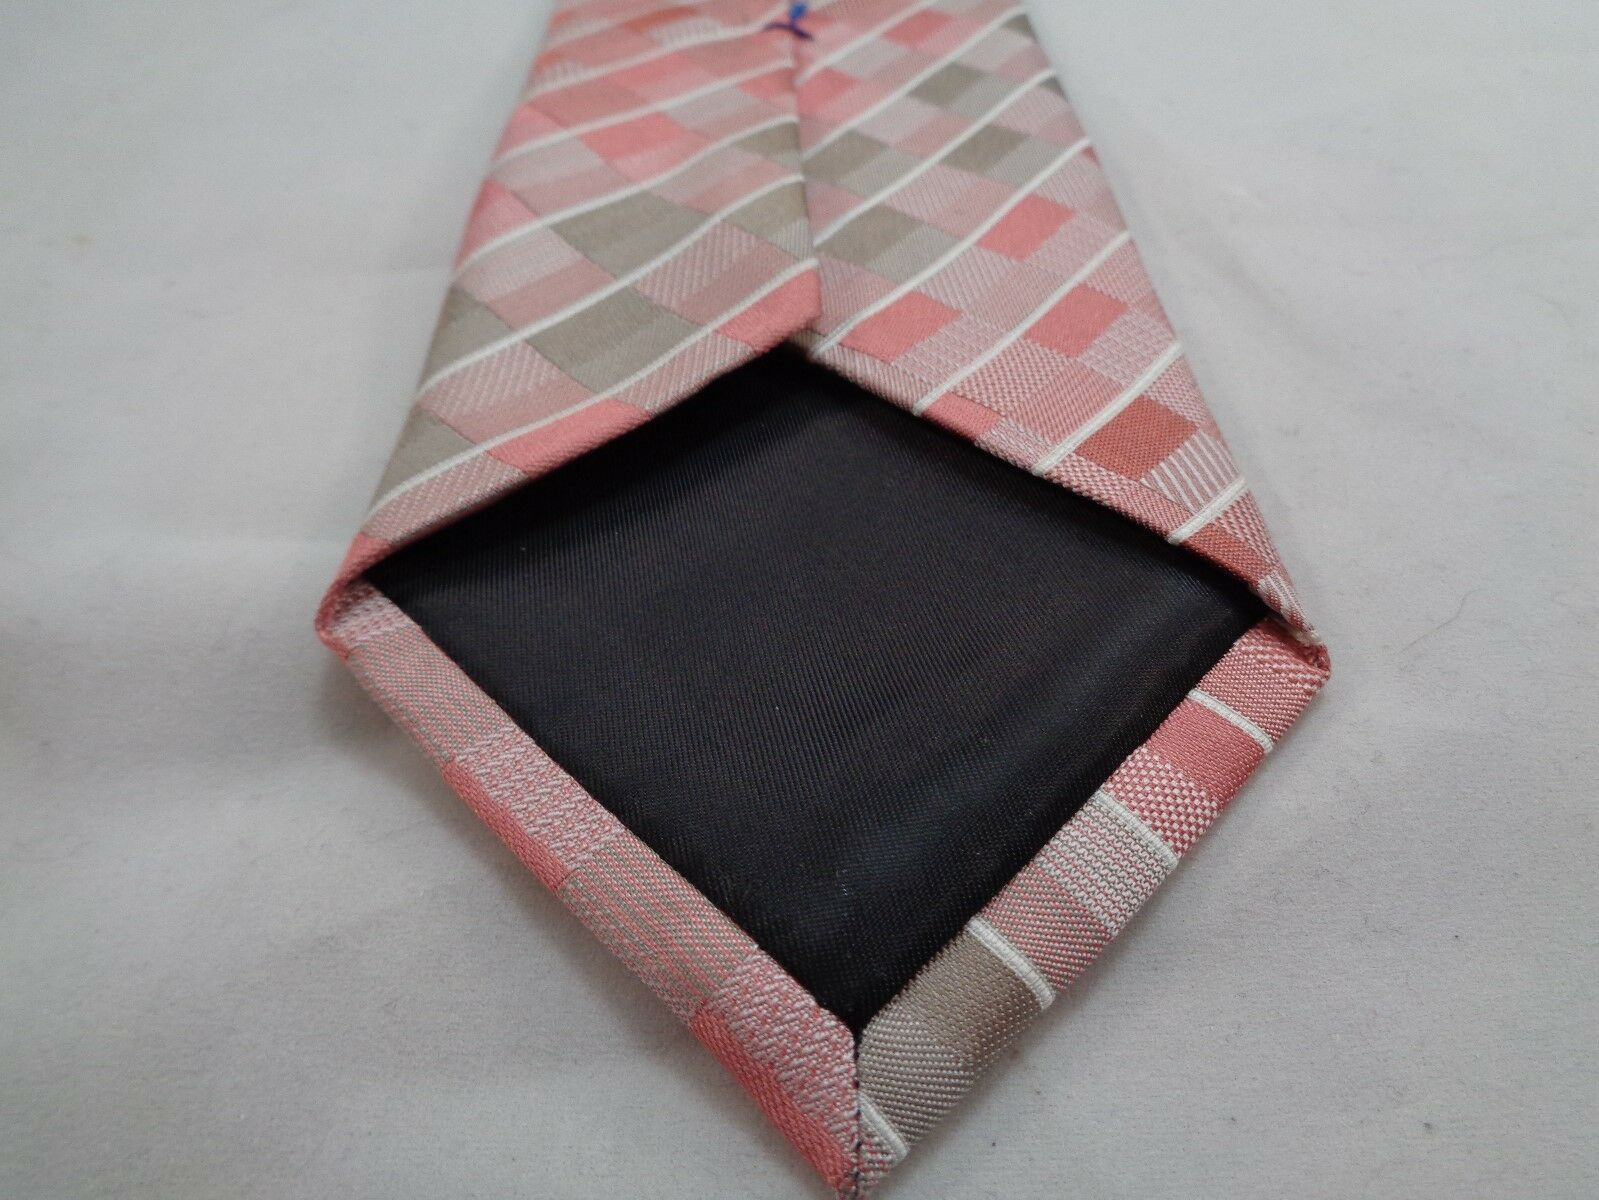 "KENNETH COLE REACTION PINK CHECKERED SILK NECKTIE 60"" LONG 3"" WIDE image 5"